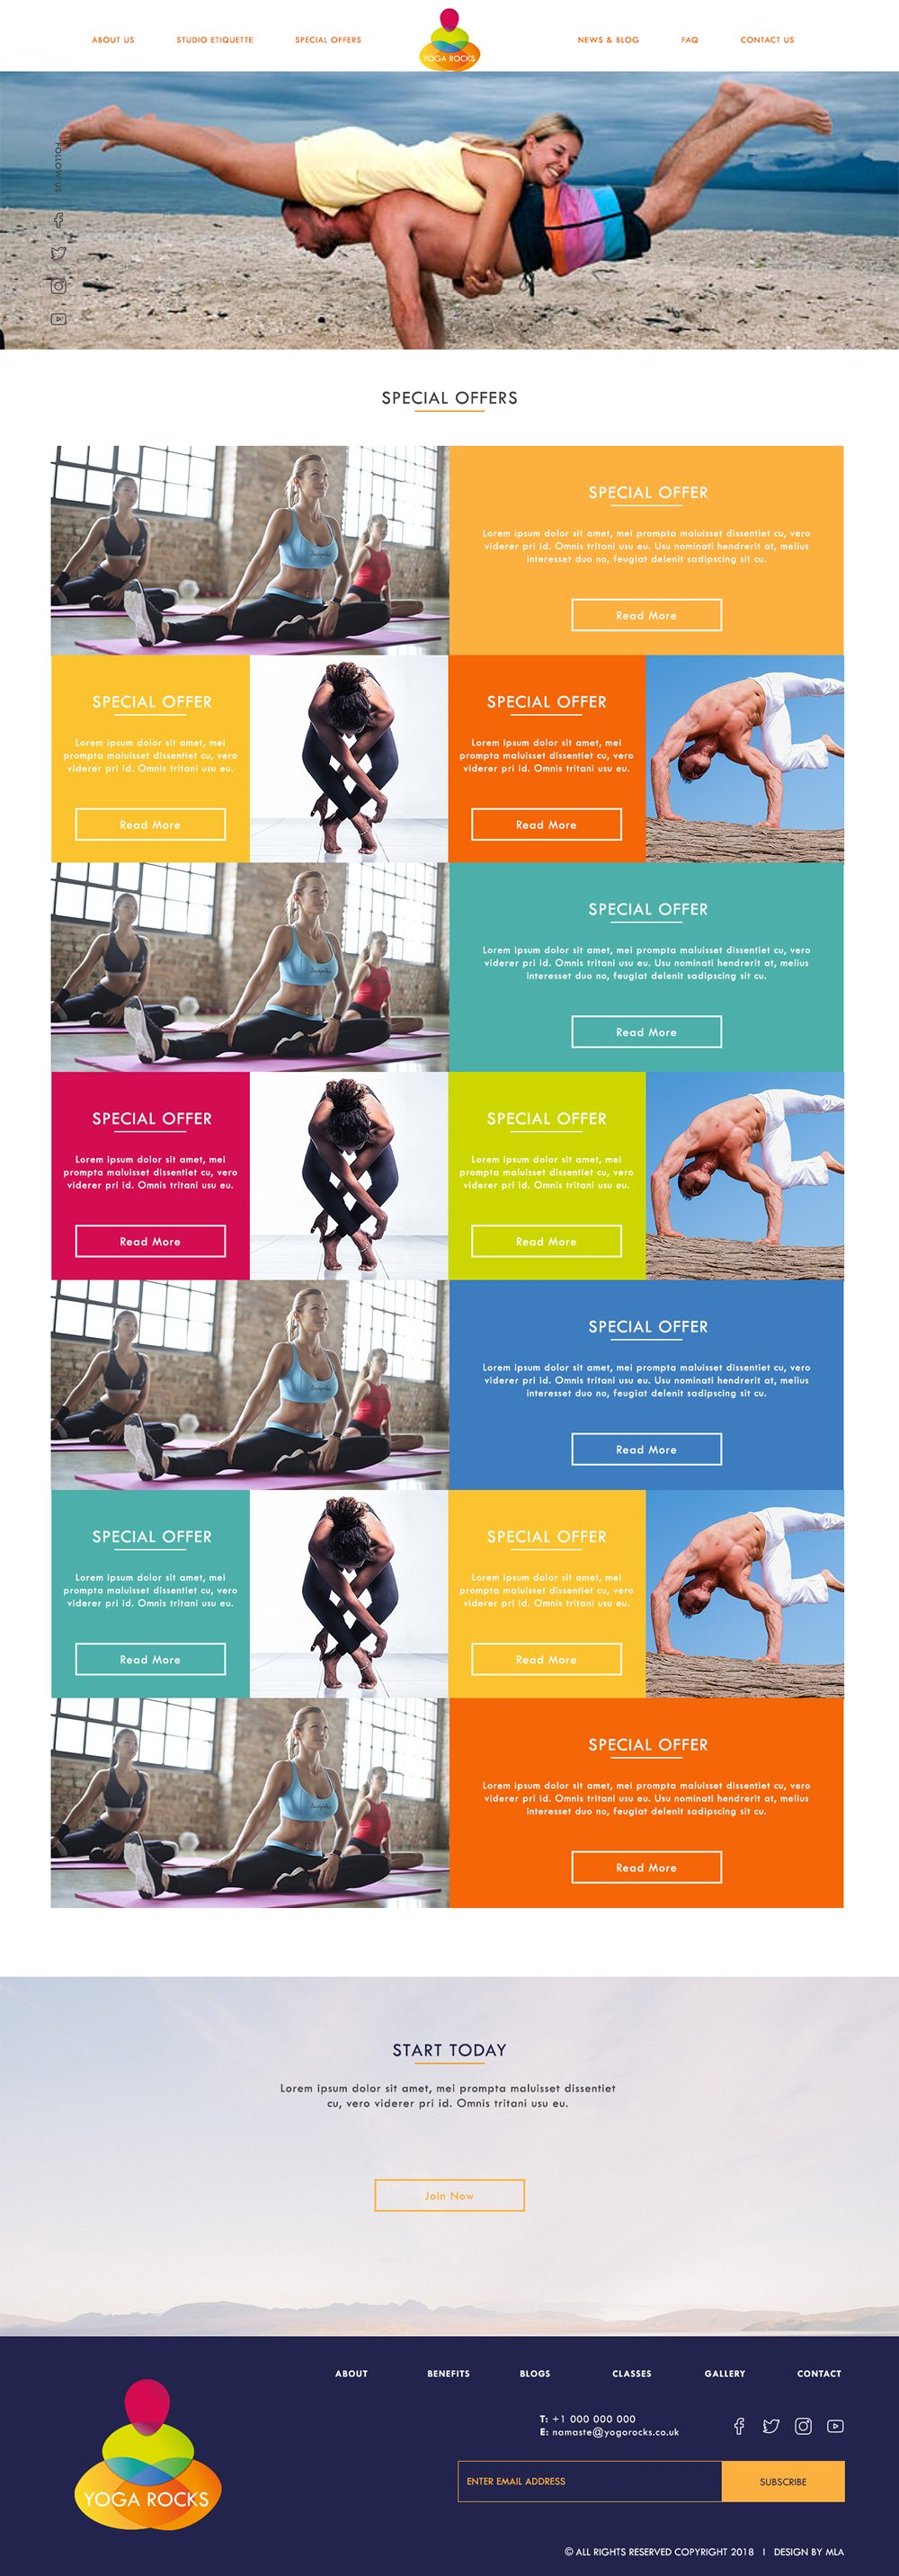 Yoga Rocks special offers page design - London Web Design - web design agency london